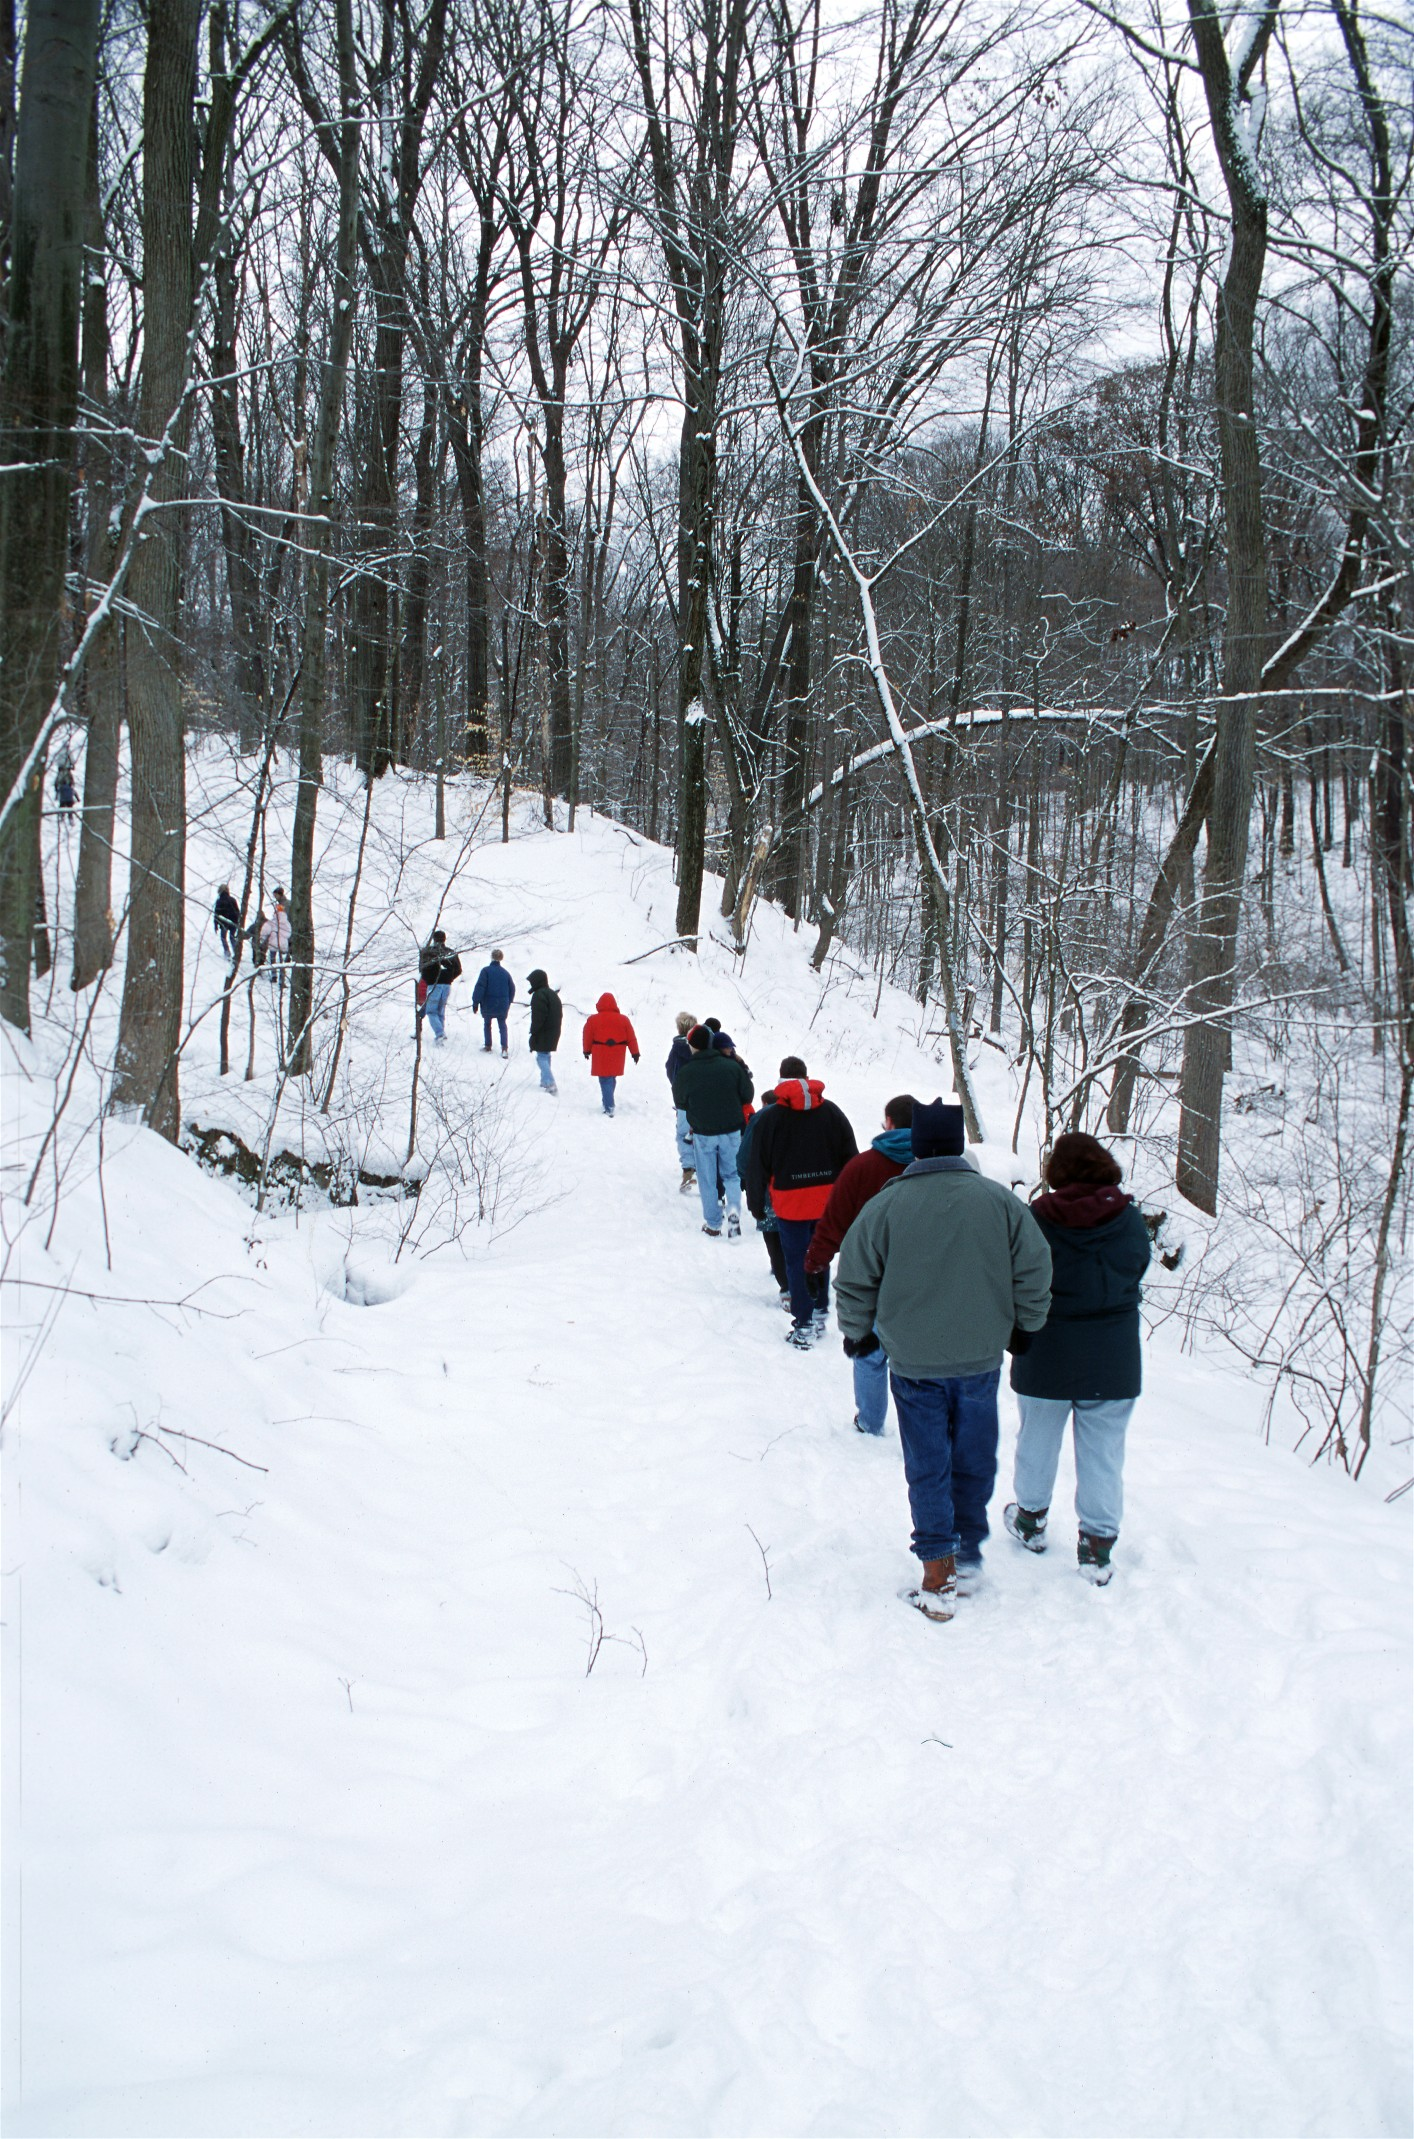 COME HIKING IN A WINTER WONDERLAND WITH CLEVELAND METROPARKS